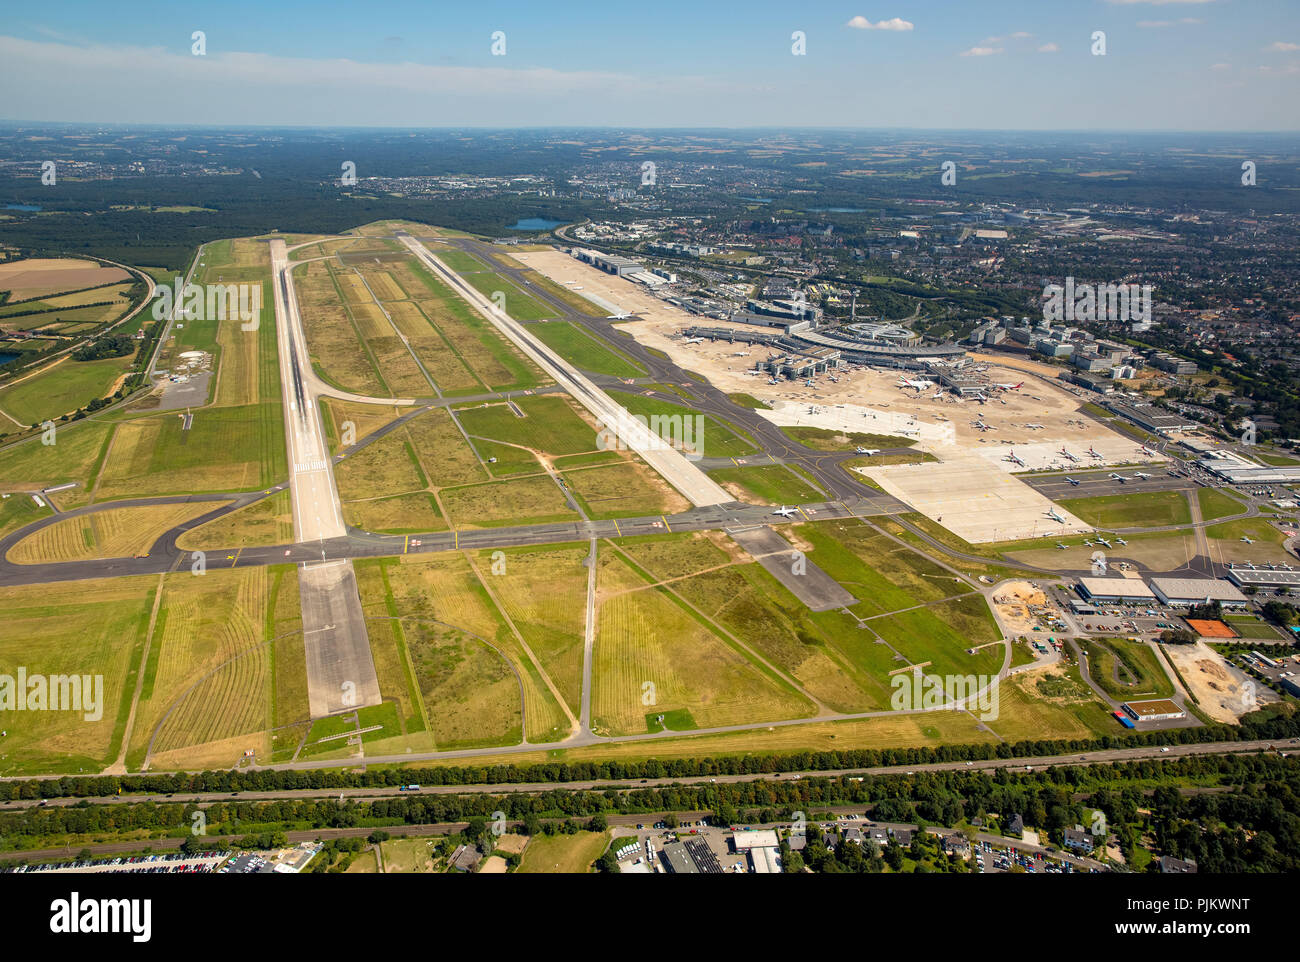 Overview on the runways 05L and 05R, Dusseldorf Airport, Dusseldorf-Lohausen Airport, Dusseldorf, Rhineland, North Rhine-Westphalia, Germany - Stock Image